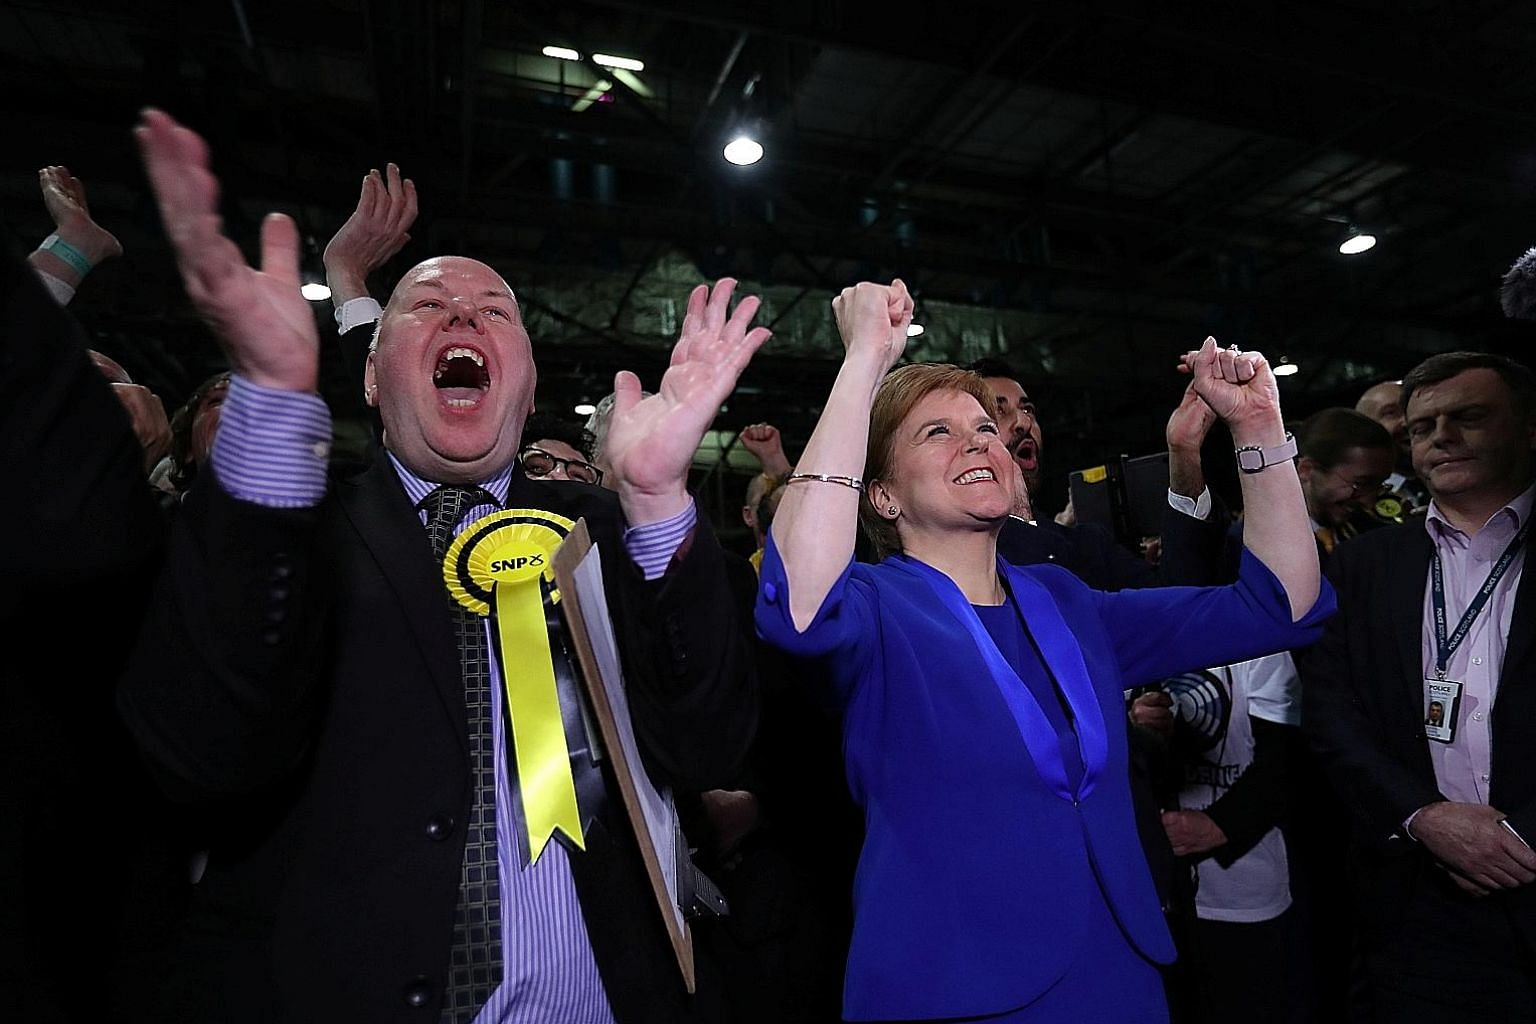 Scottish National Party leader Nicola Sturgeon cheering with supporters at a counting centre for the general election in Glasgow, Scotland, yesterday. Scottish nationalists won 48 of the 59 parliamentary seats in Scotland.